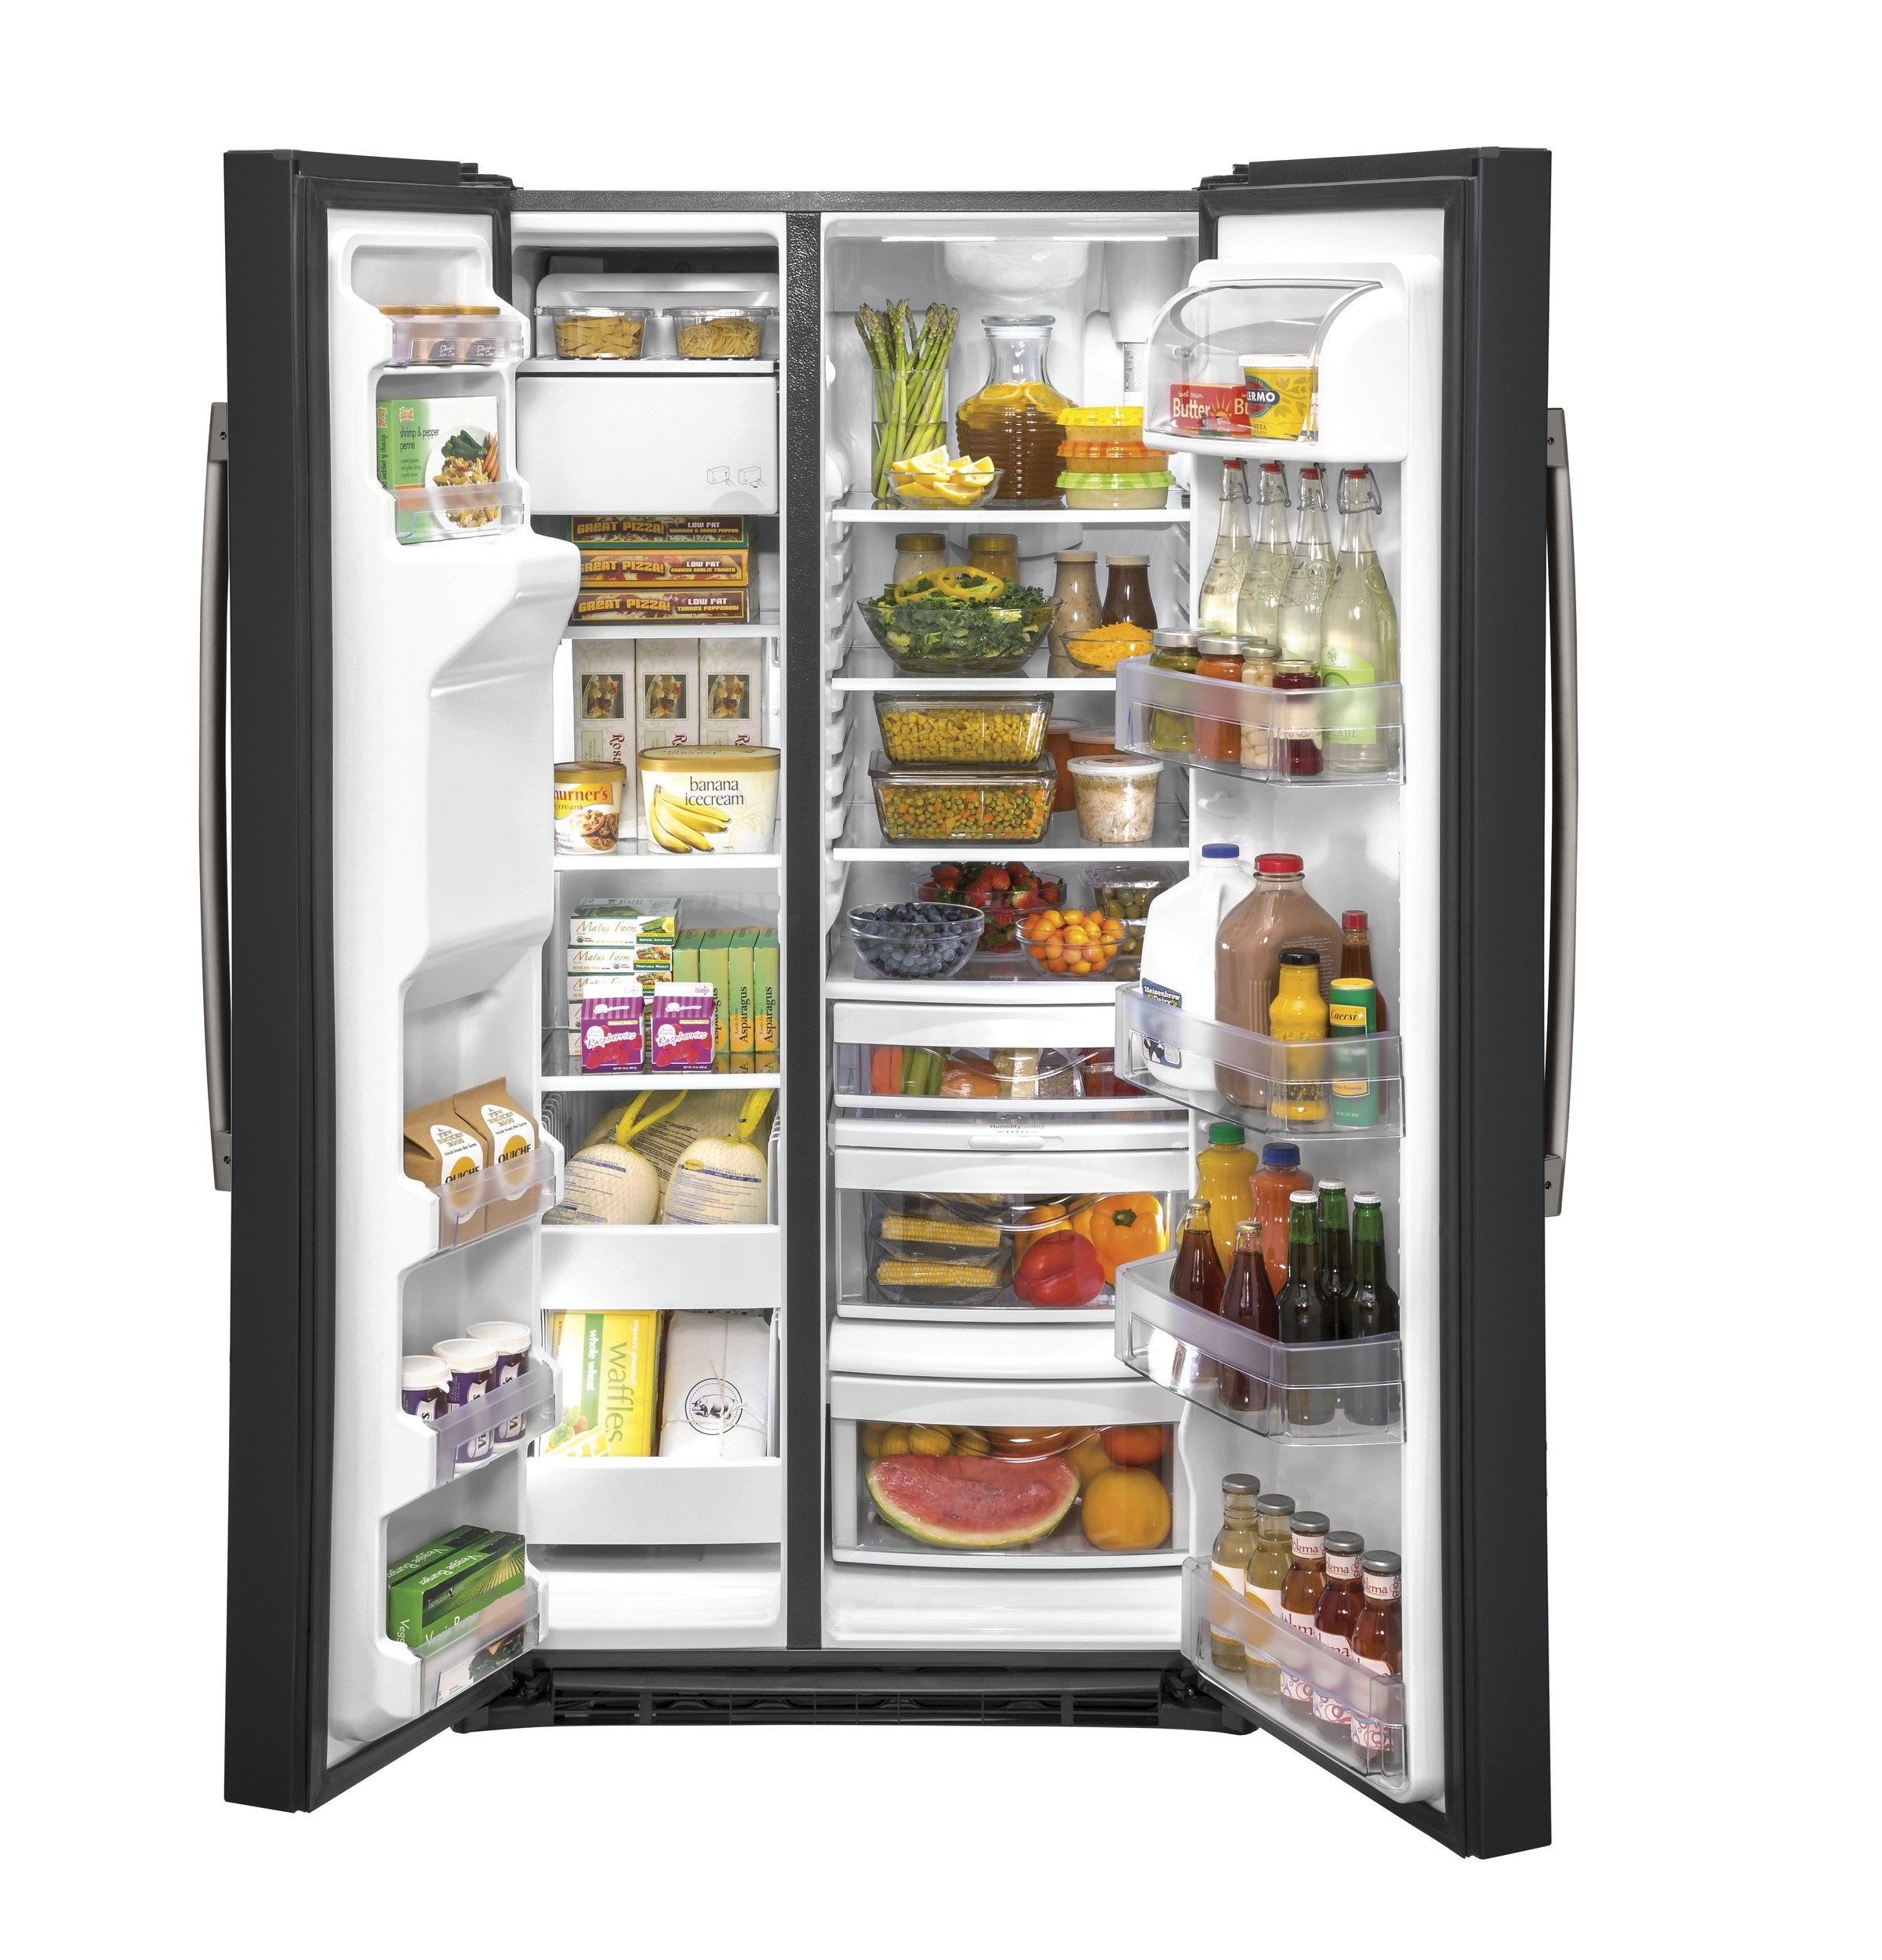 Model: GZS22IENDS | GE GE® 21.8 Cu. Ft. Counter-Depth Side-By-Side Refrigerator